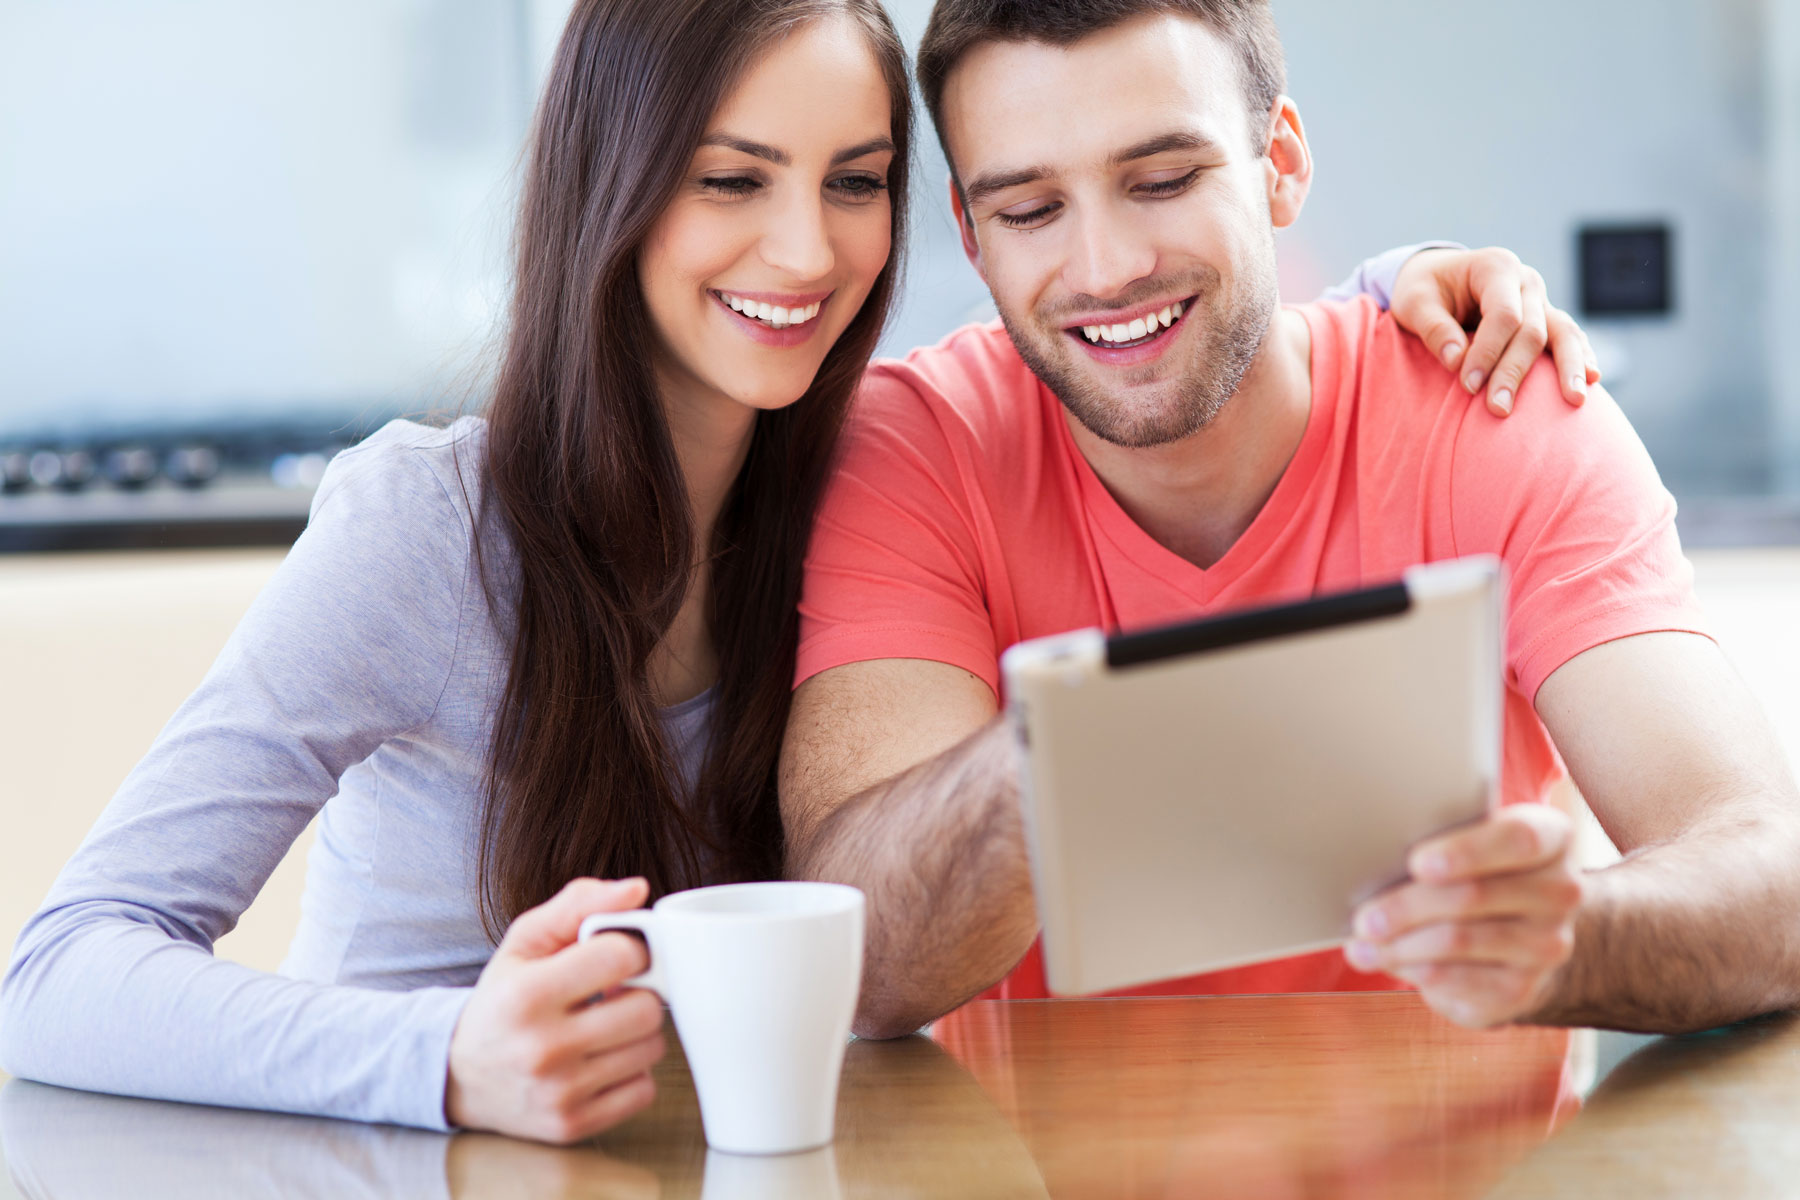 couple-looking-at-ipad-x1800.jpg